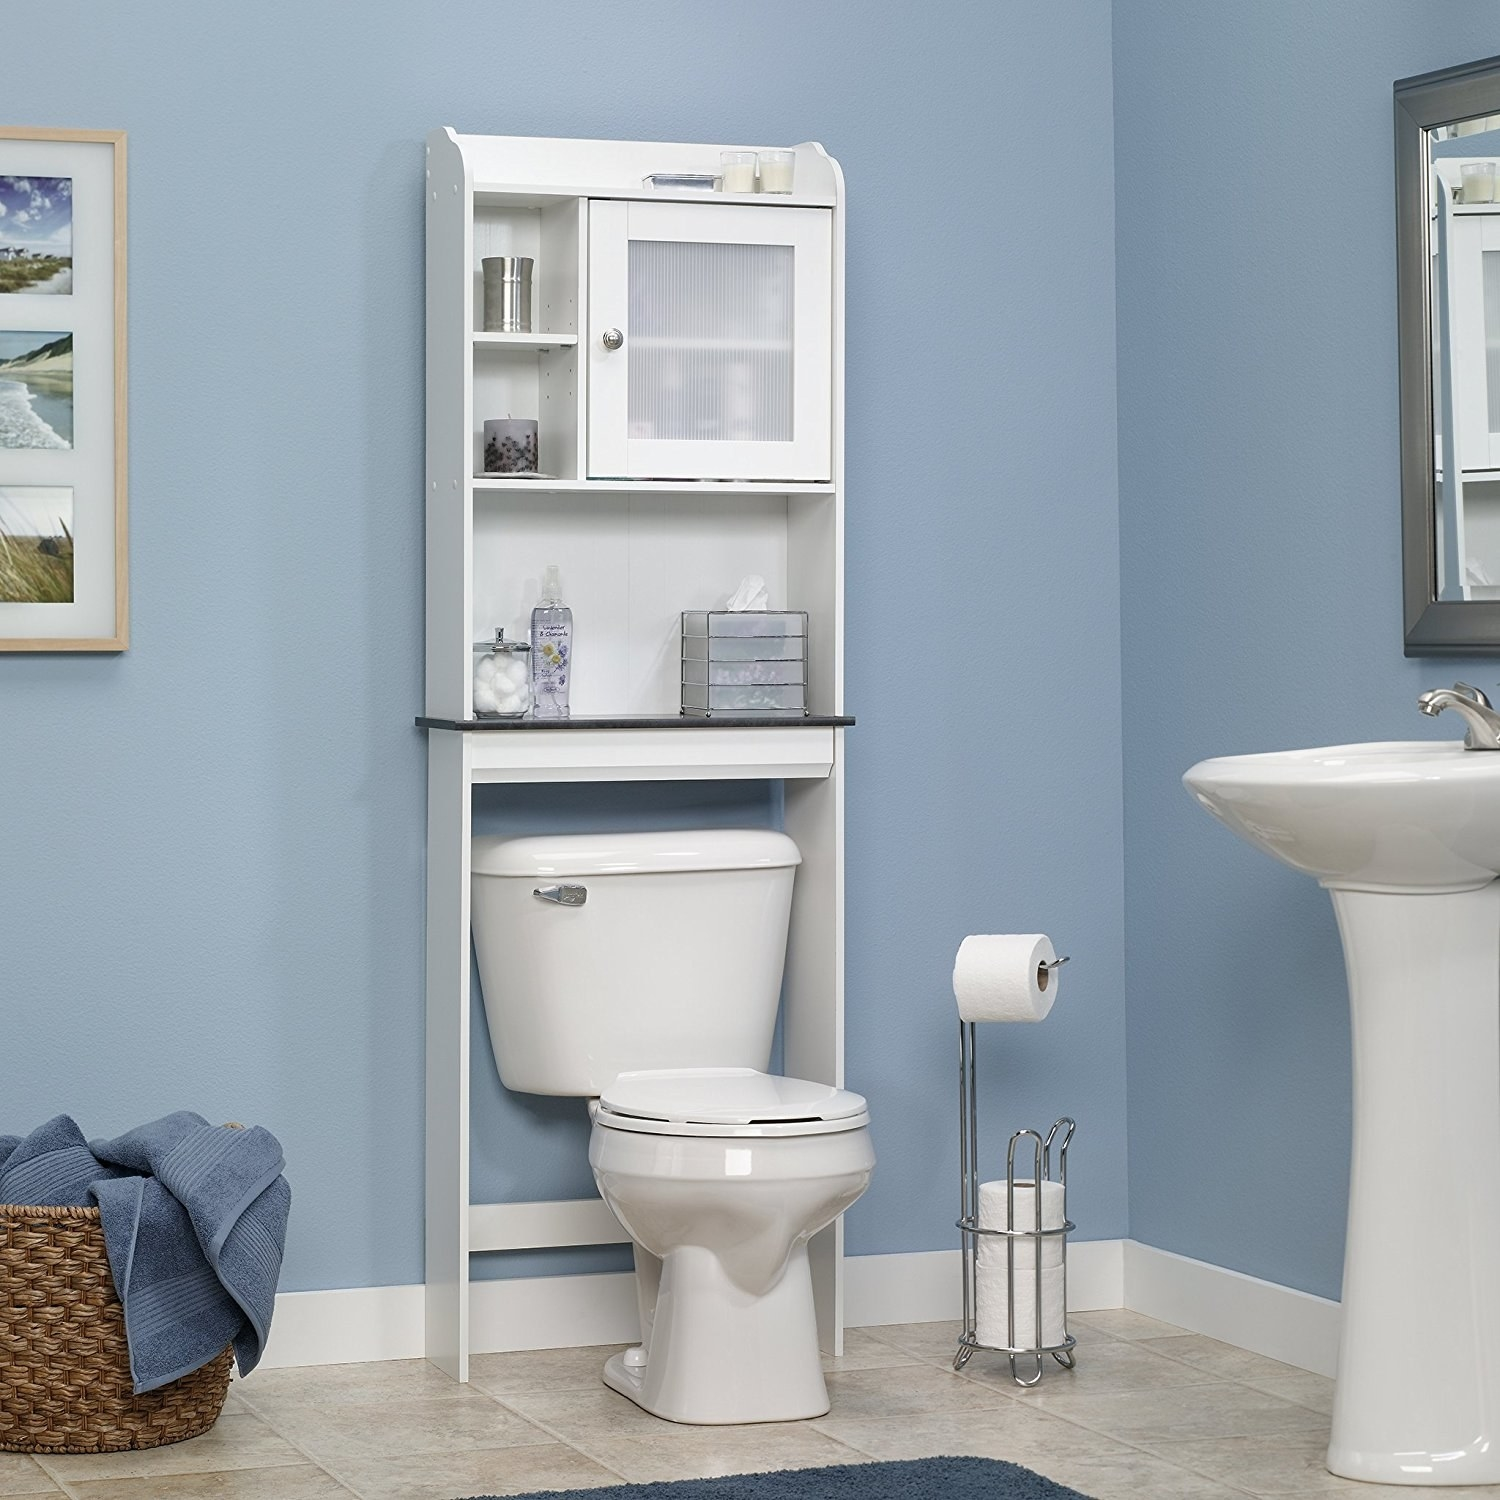 over the toilet shelf with three shelves and small cabinet